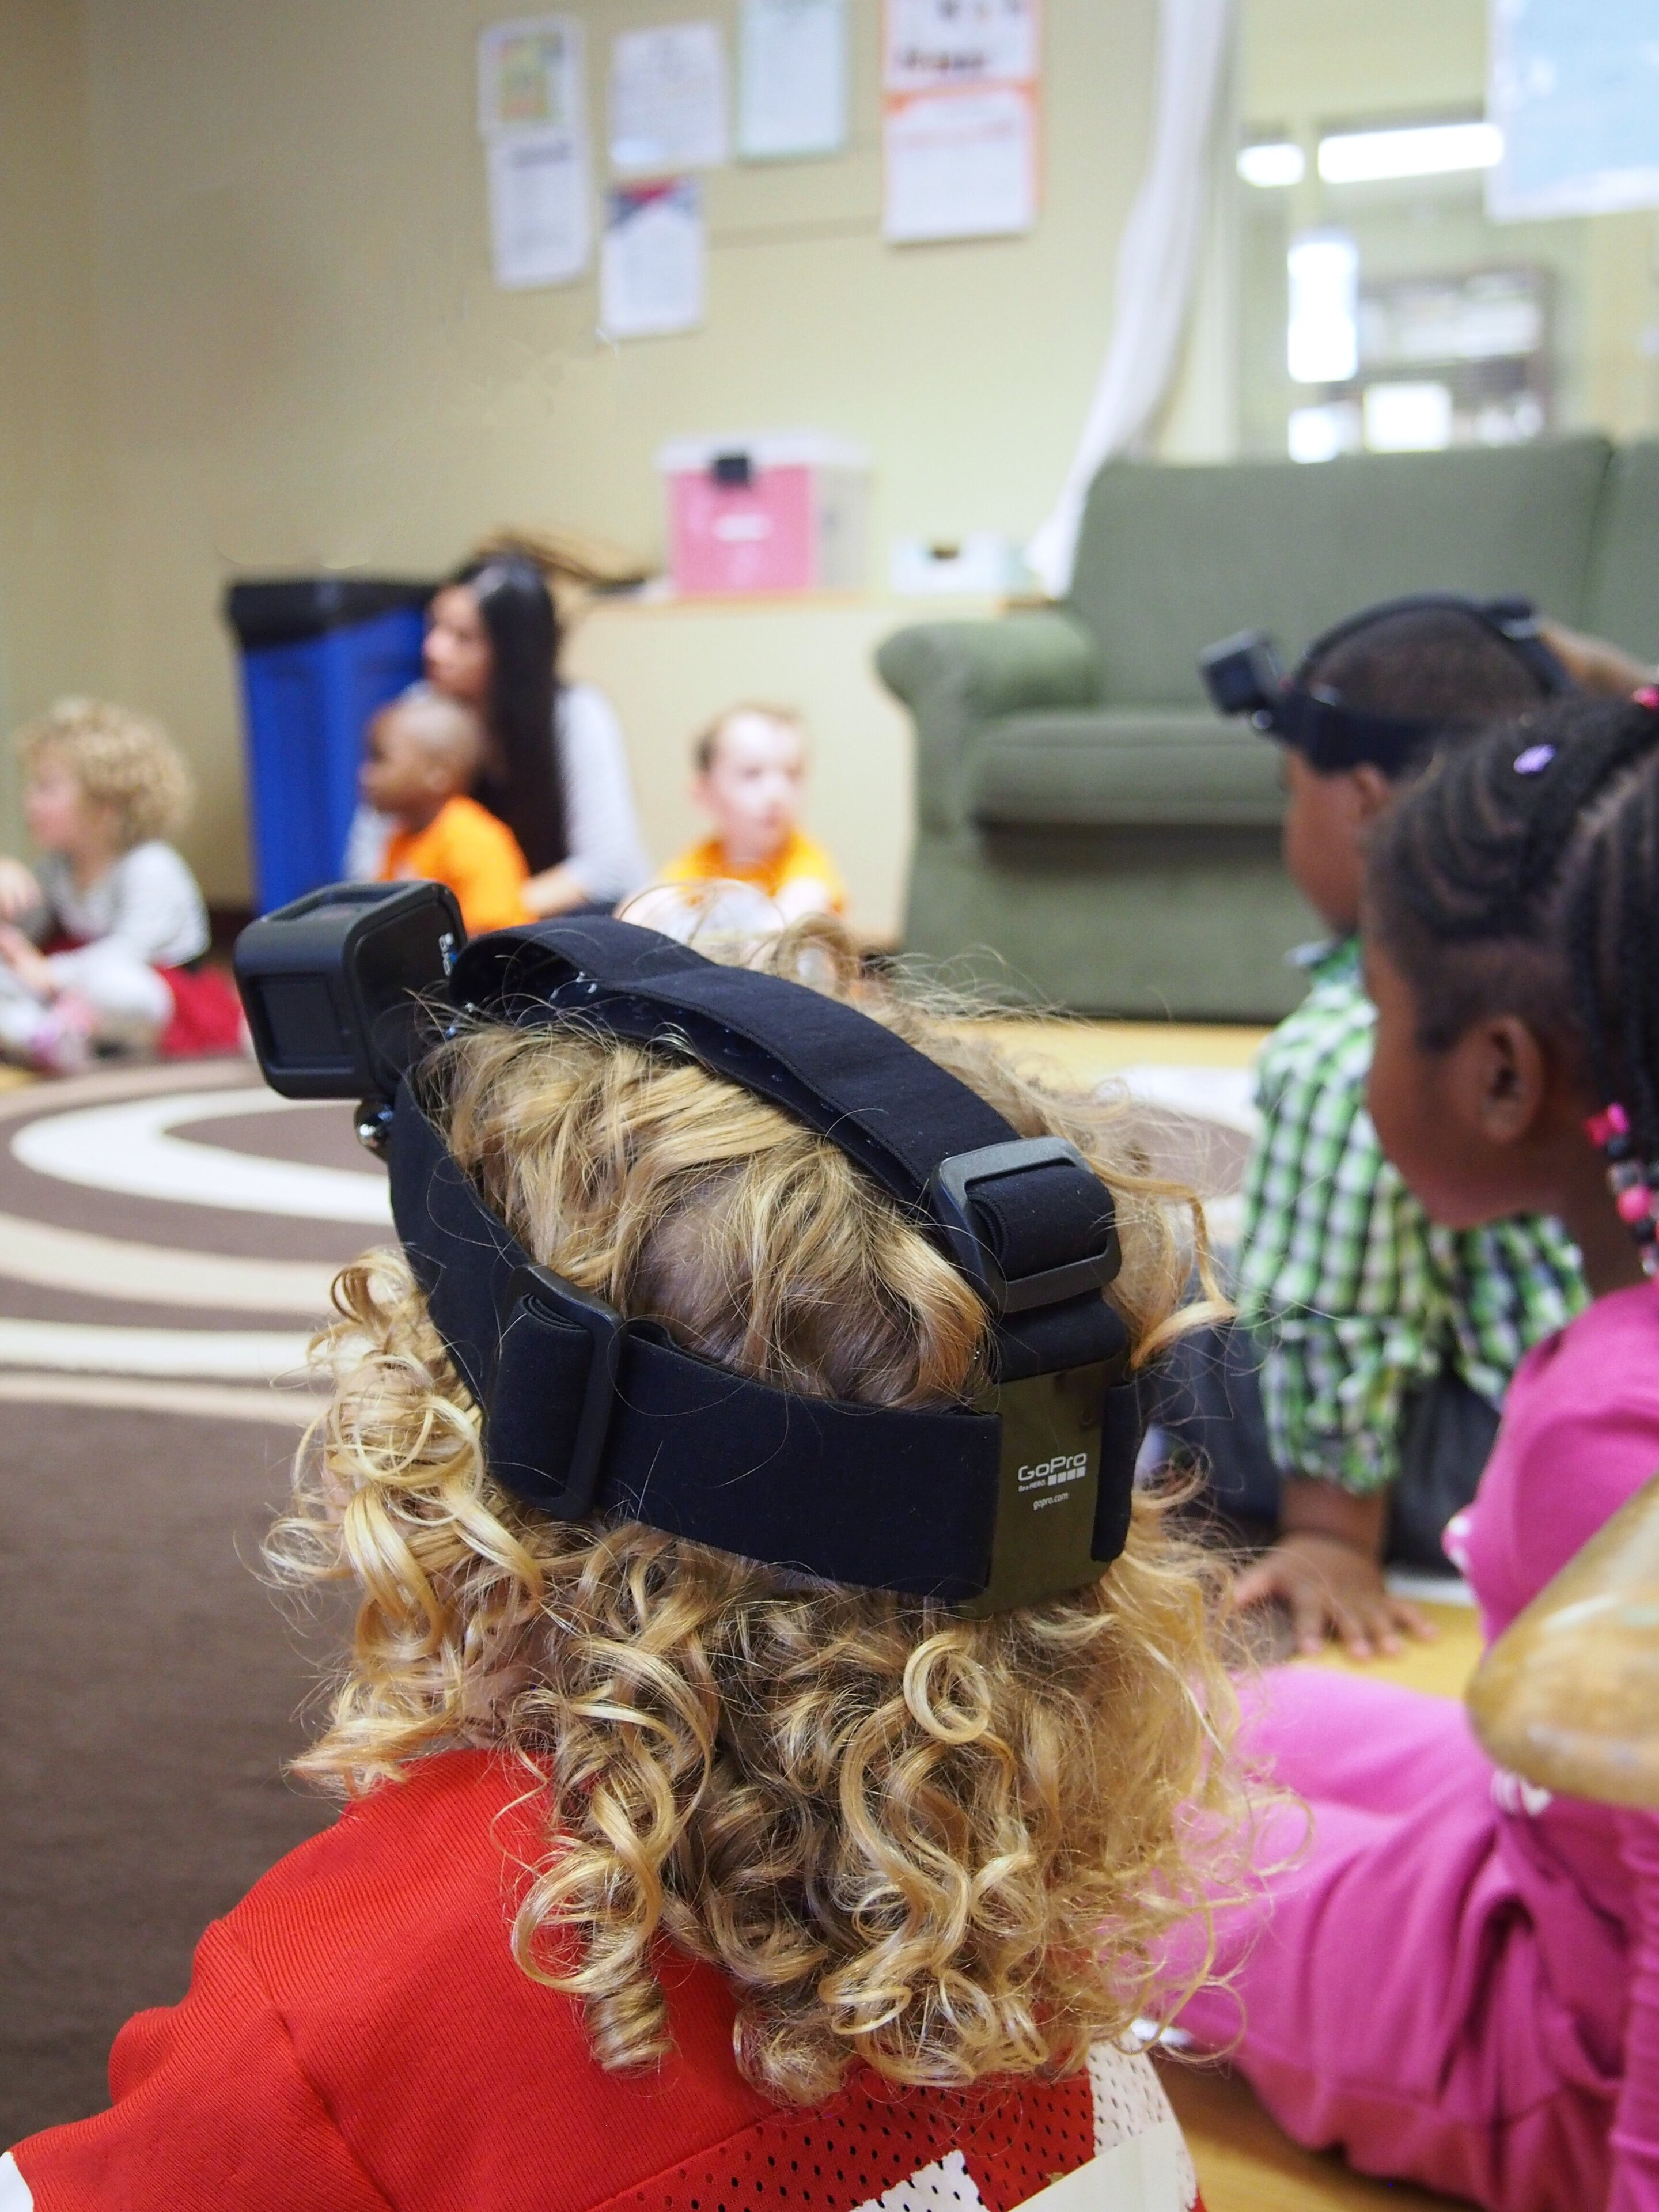 Kids wore video cameras in their preschool class, for science